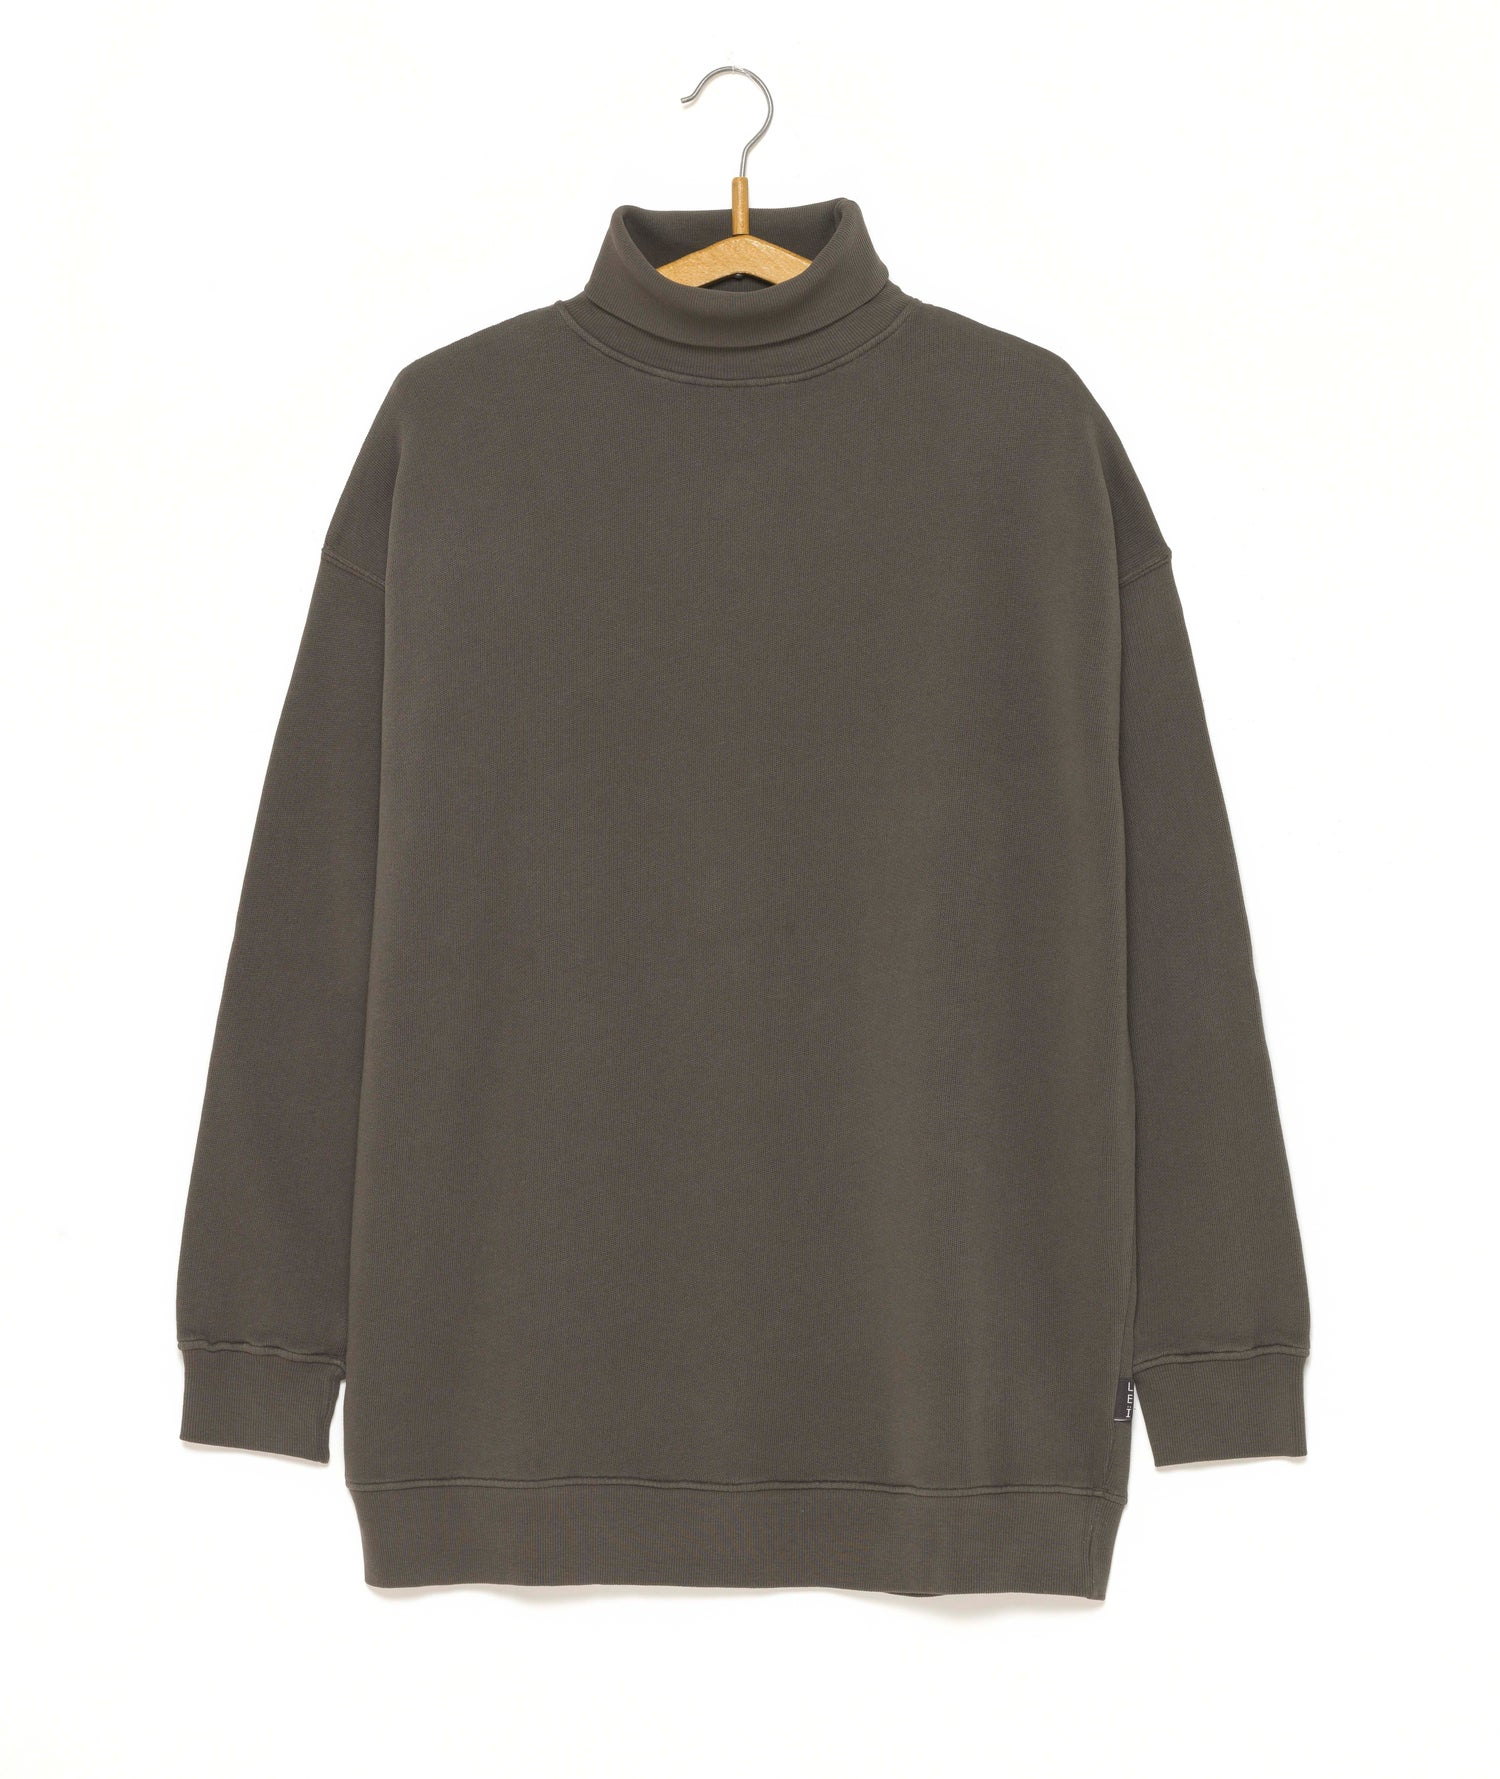 Image of Sweat molleton oversized col roulé CHANCE 99€ -50%